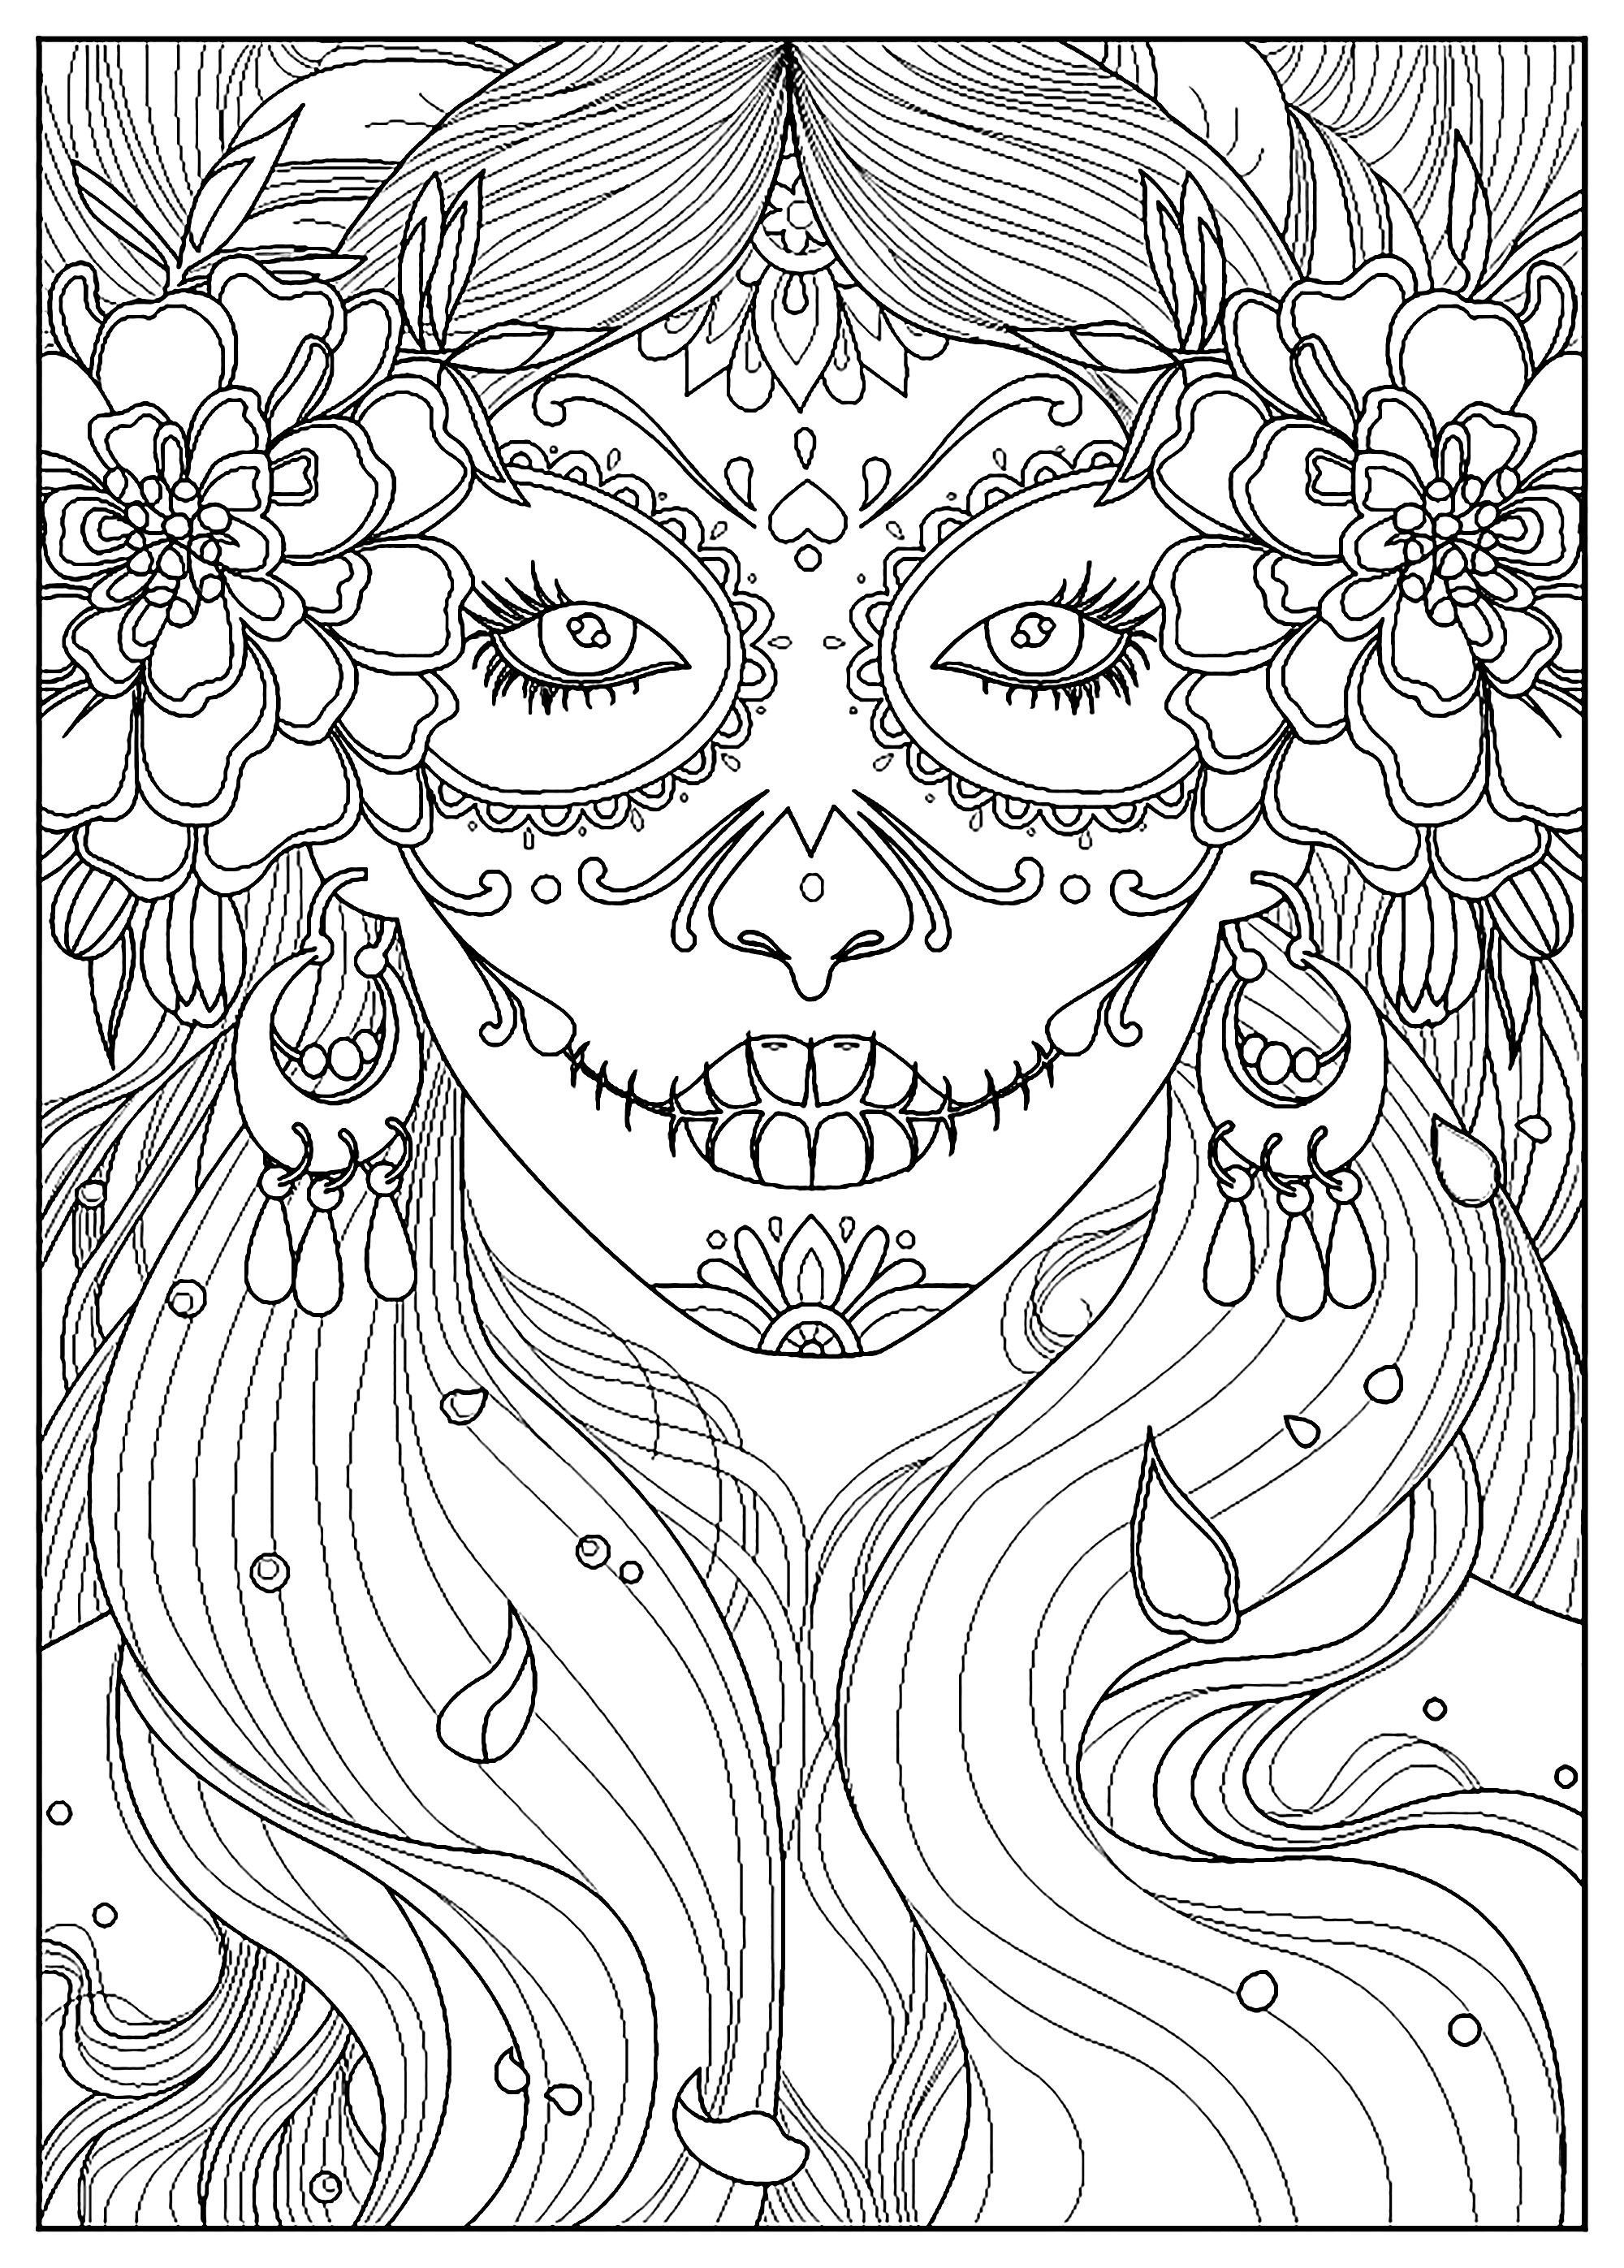 Day Of The Dead - El Dia De Los Muertos Adult Coloring Pages